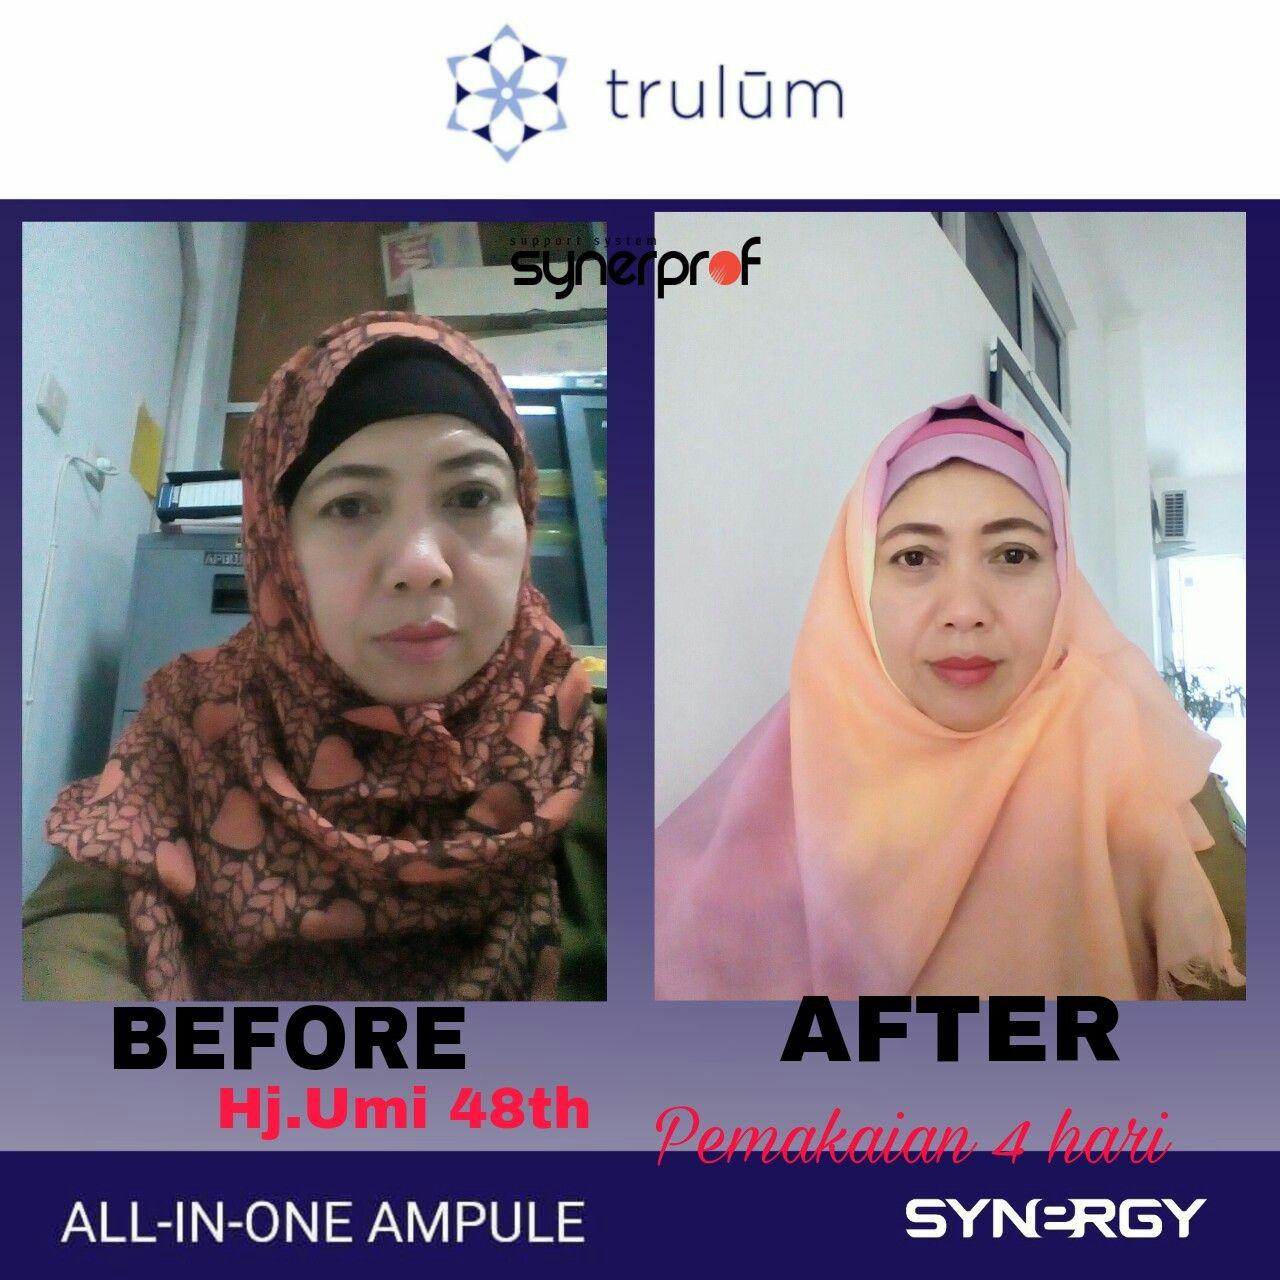 Klinik Kecantikan Trulum All In One Di Kayumalue Pajeko, Kota Palu WA: 08112338376